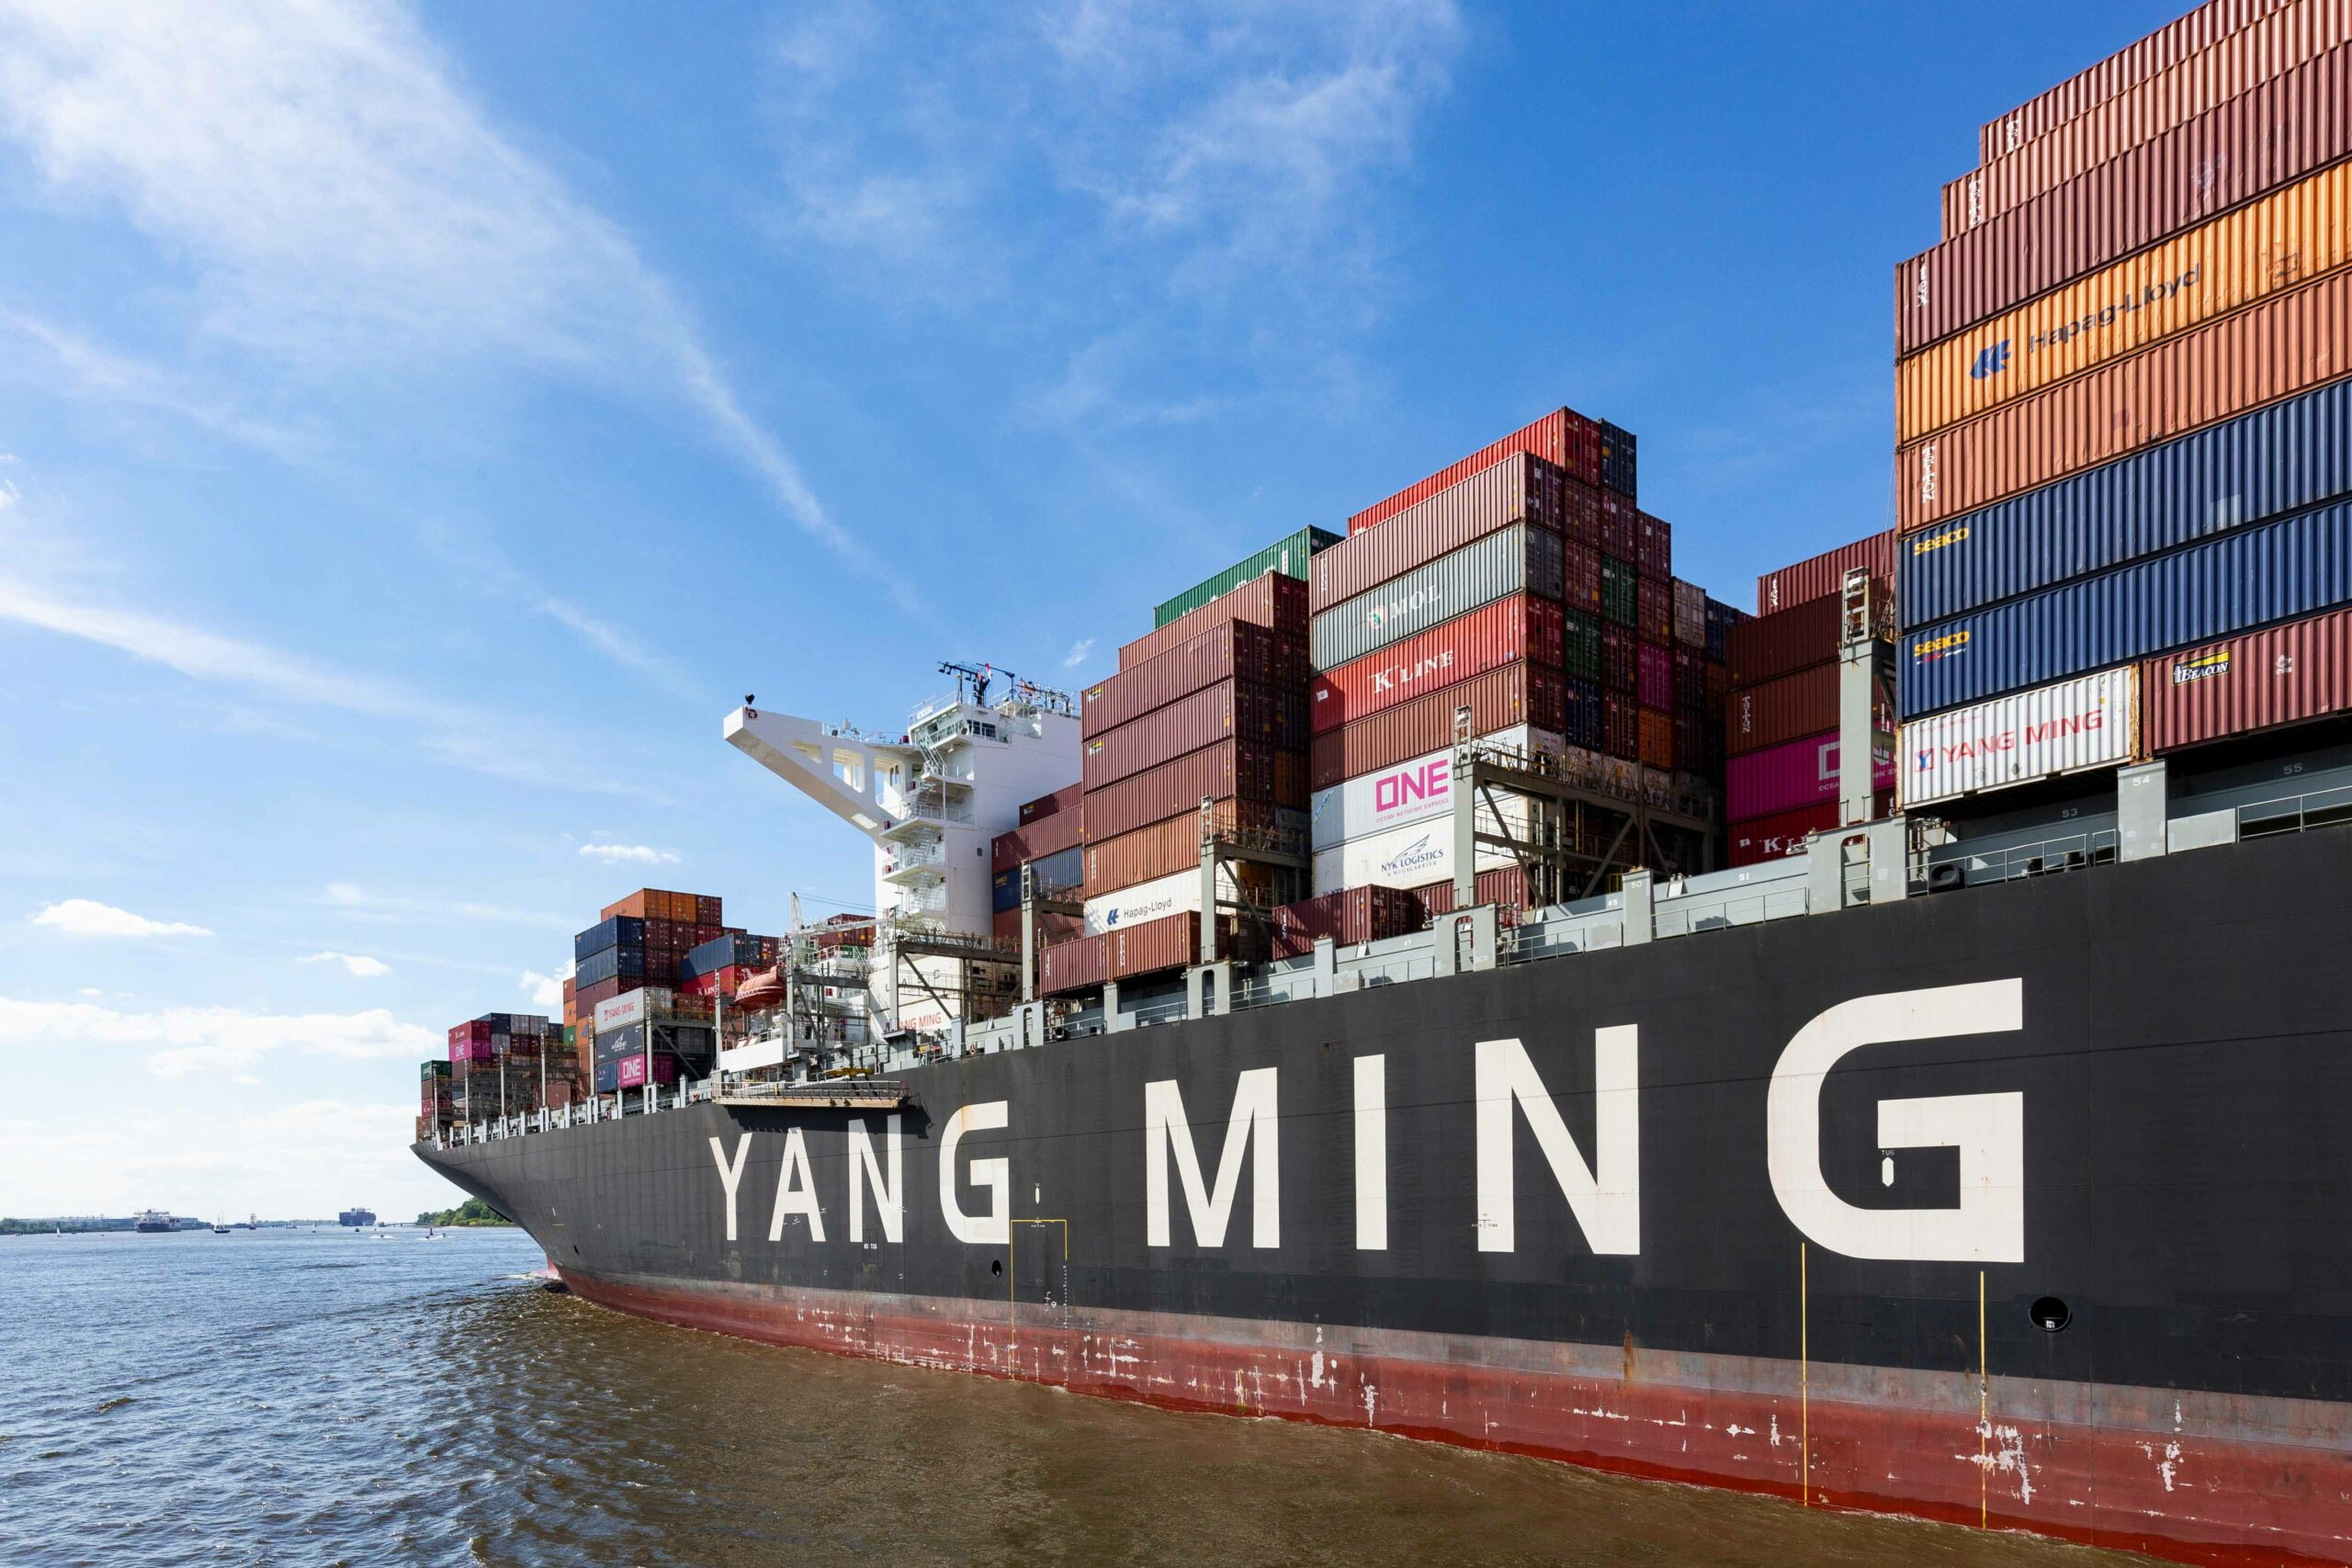 Yang Ming, the next container carrier to report impressive profits